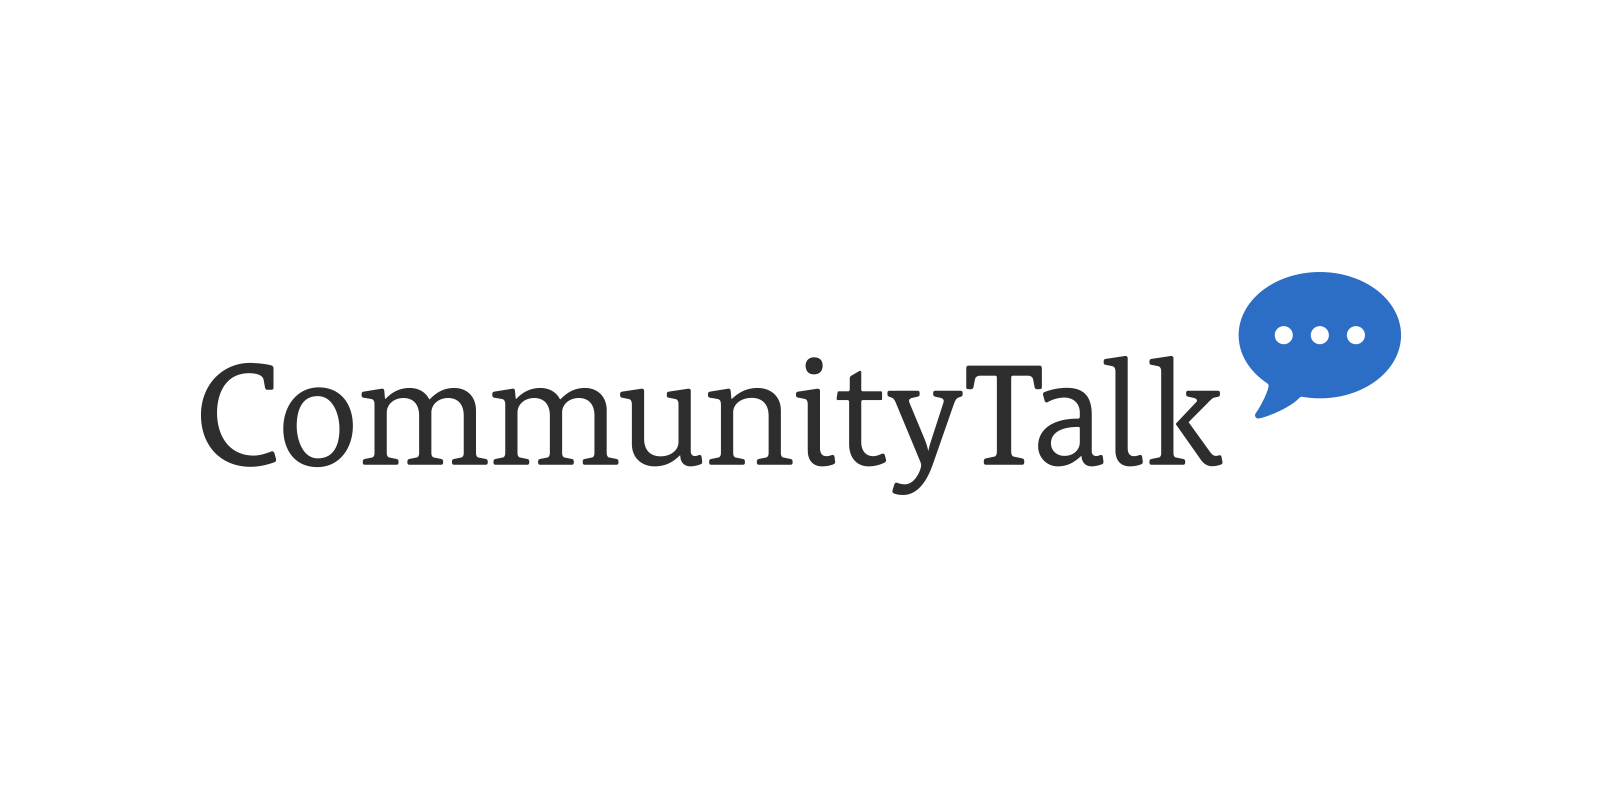 Building a SaaS Company: Going All In on CommunityTalk (and future plans for seanwes)